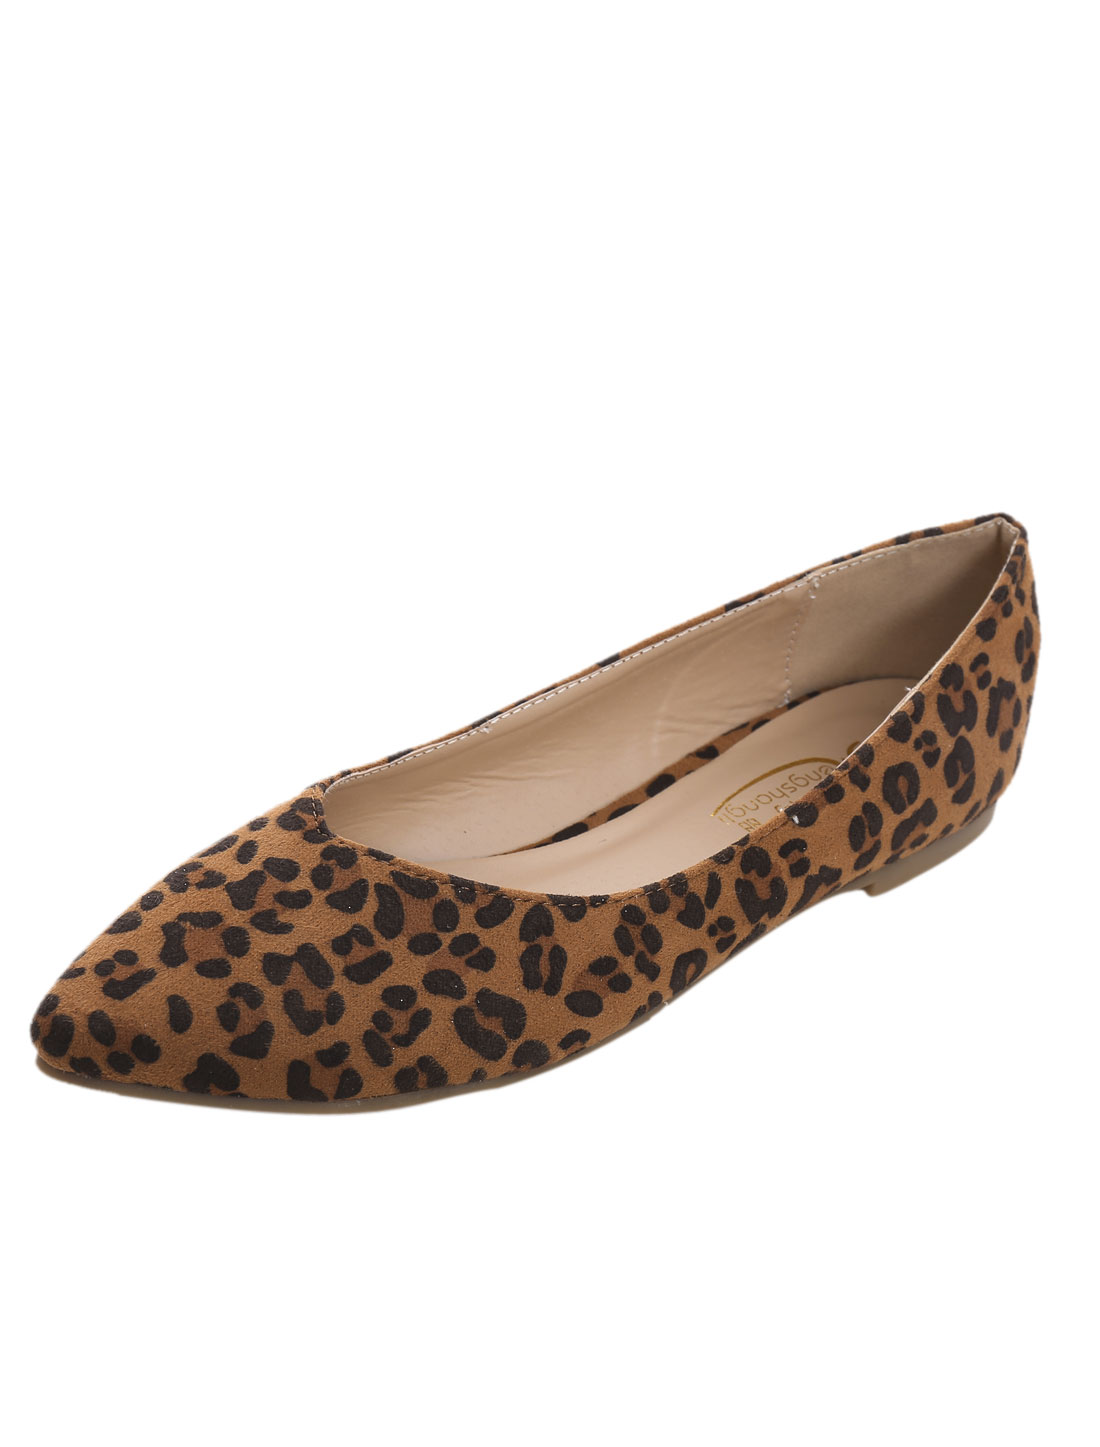 Ladies Leopard Prints Pointed Toe Padded Insole Casual Flats Shoes Brown US 10